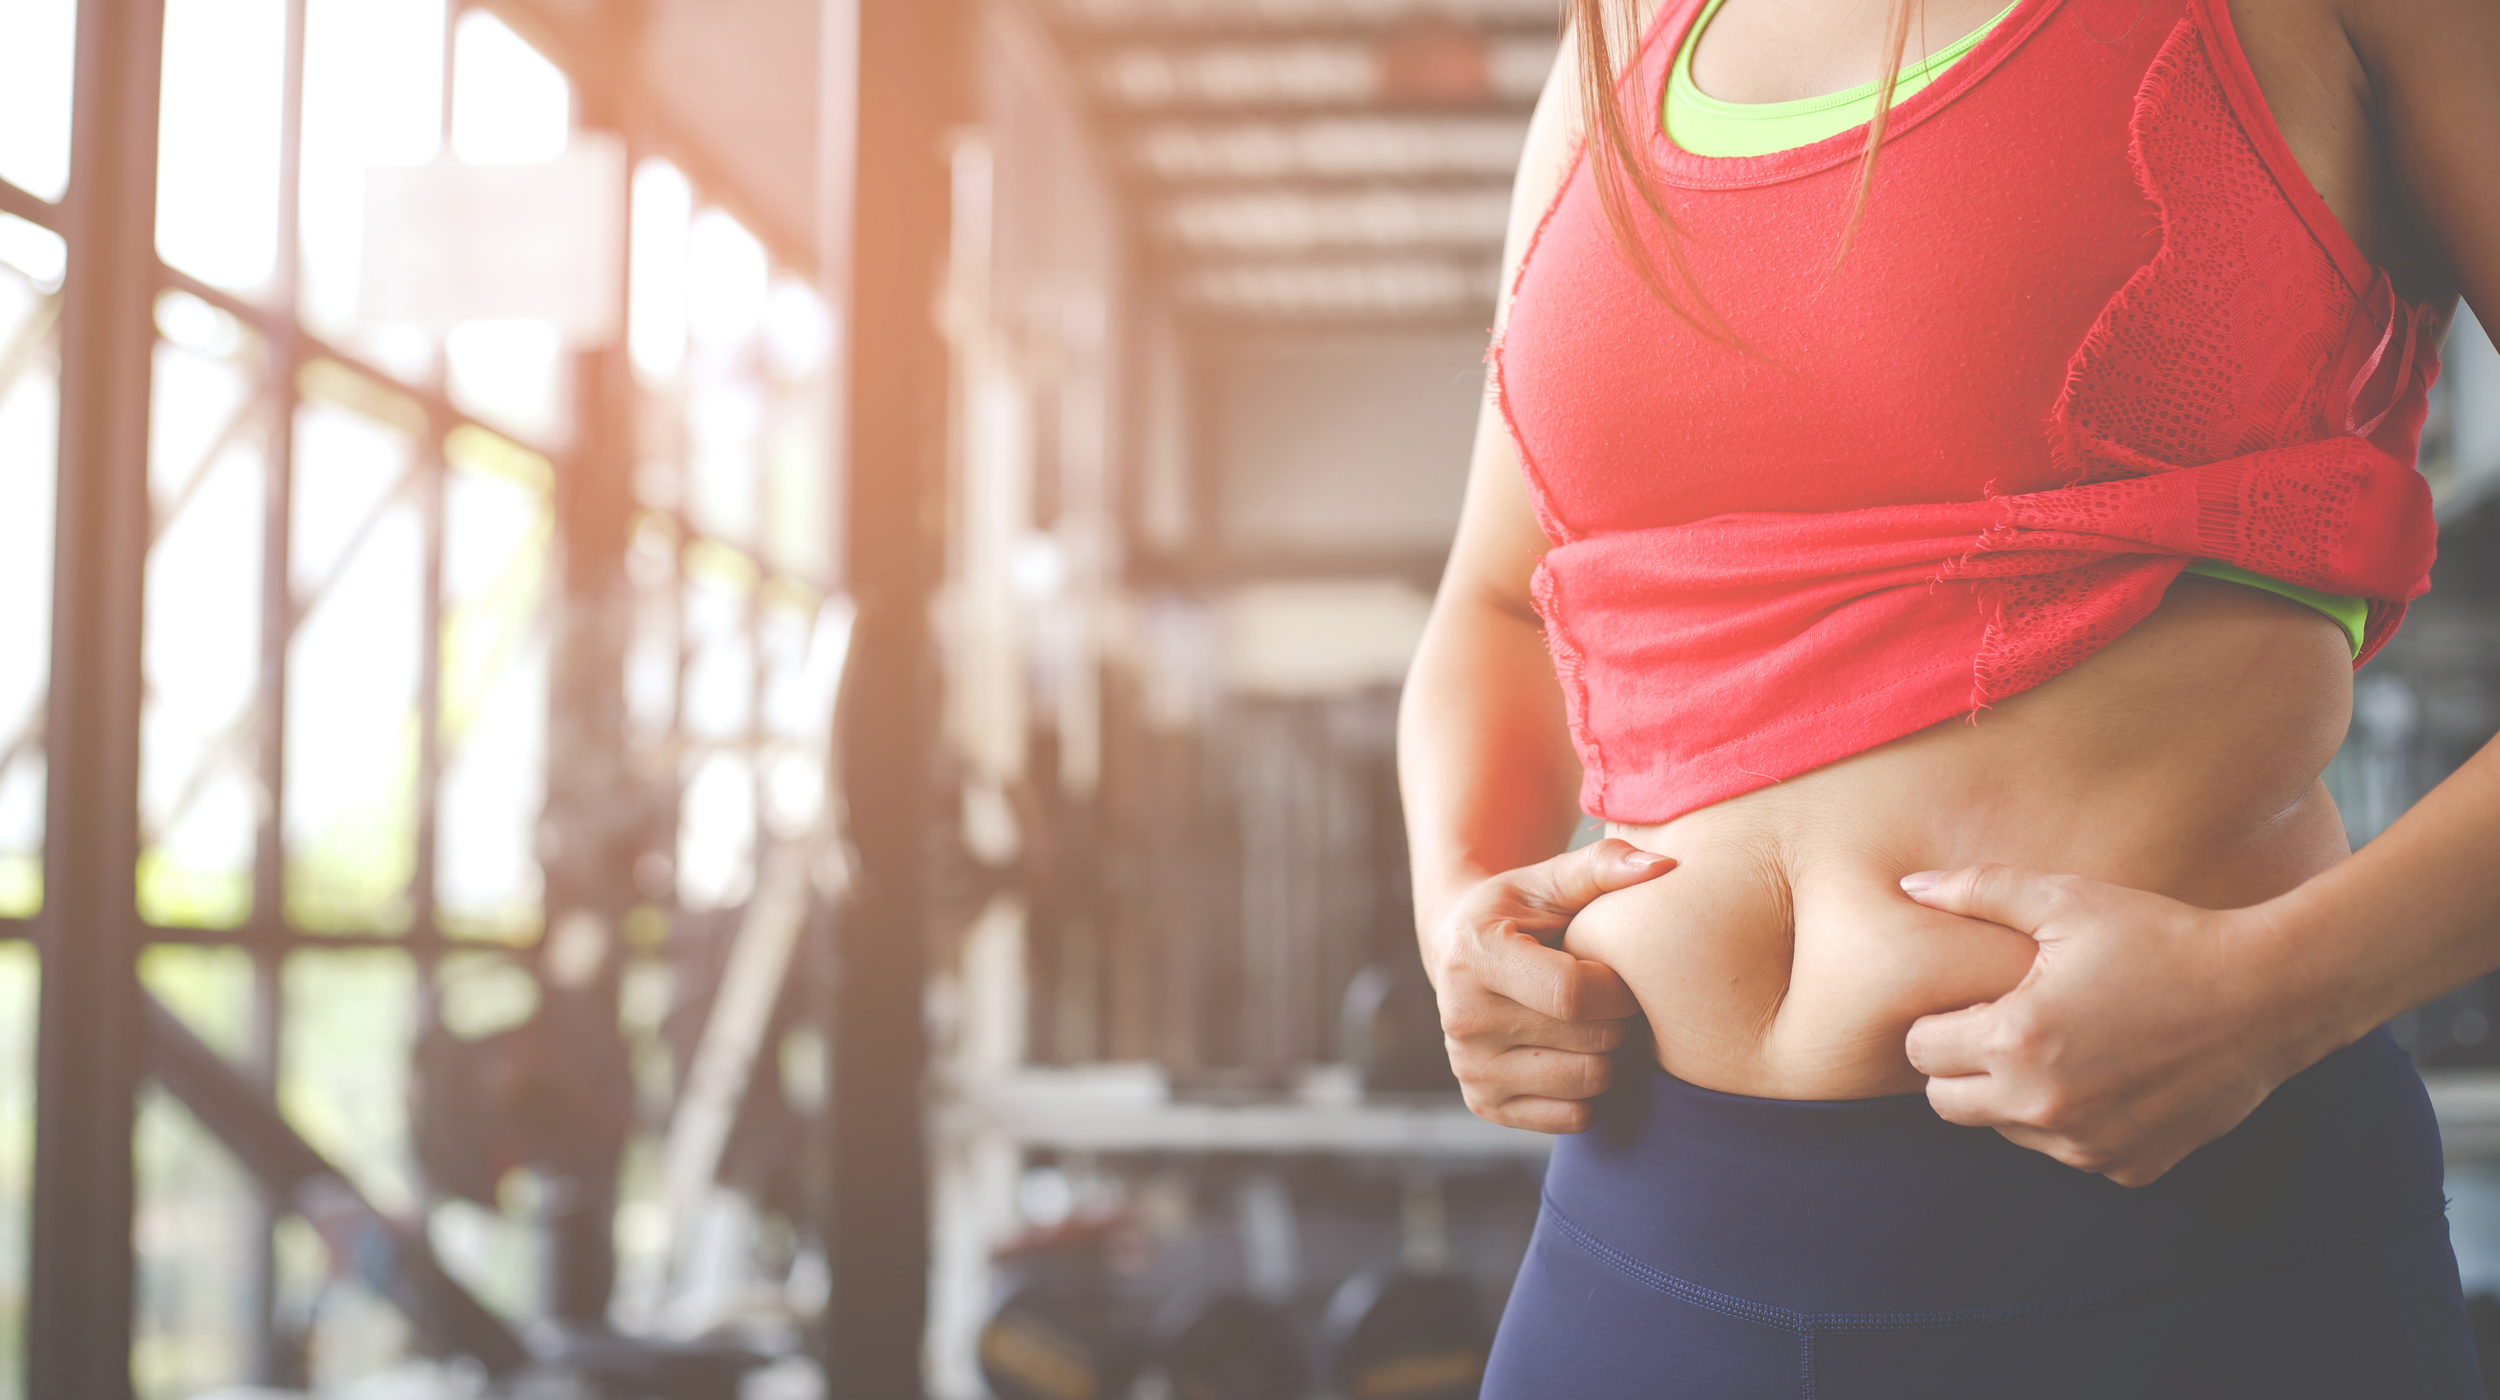 Fat Loss for Women – Don't Make it Complicated